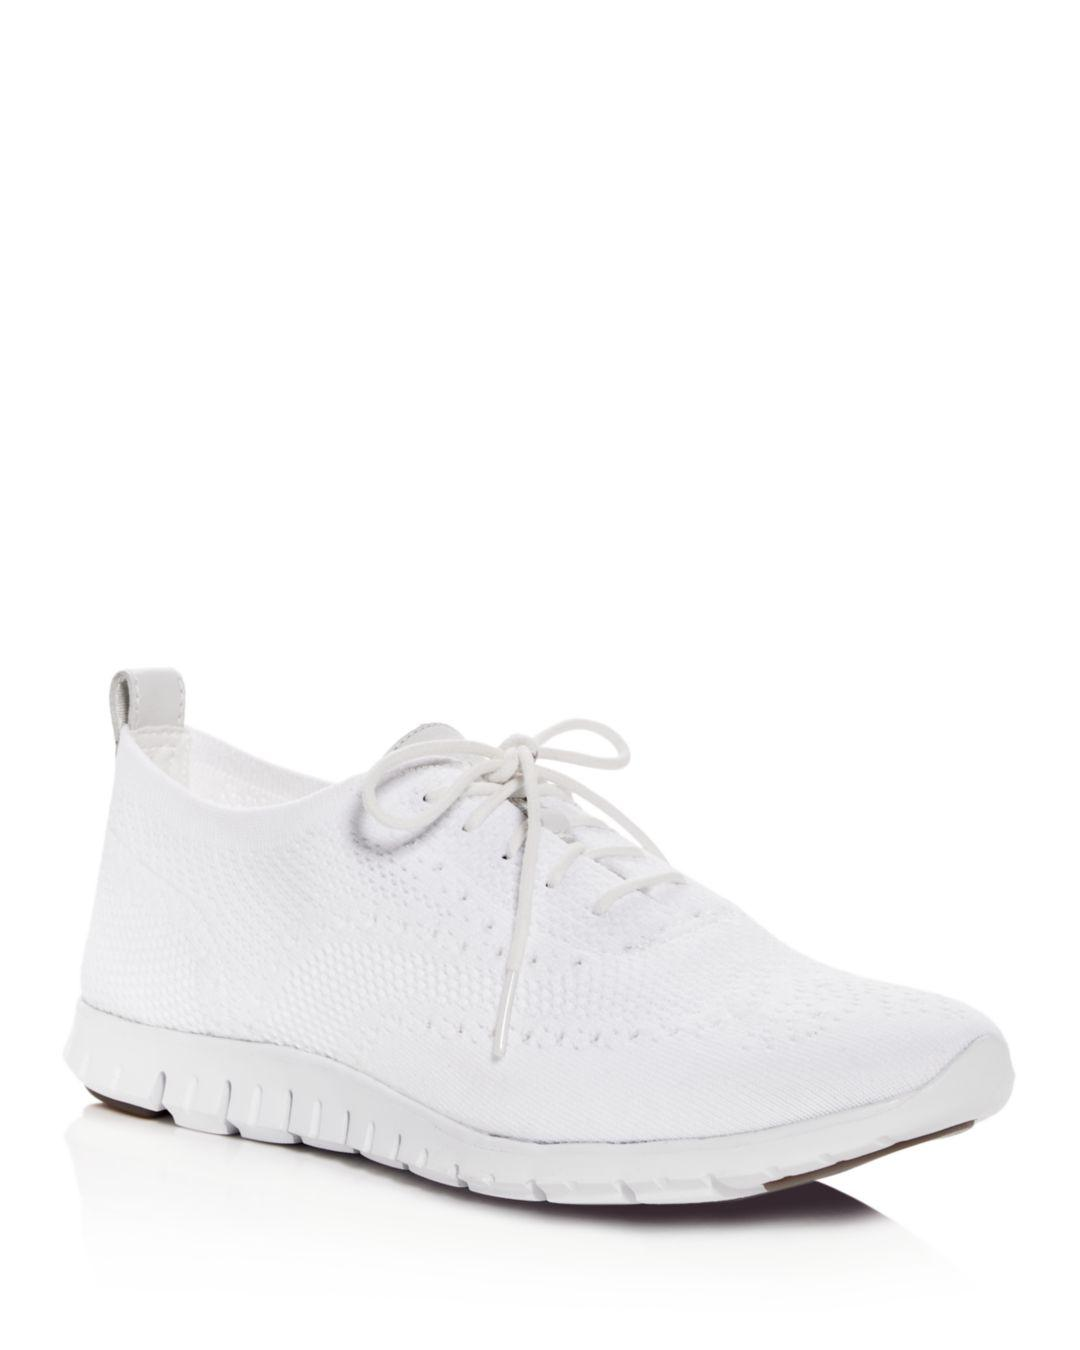 ffb3feb76594 Lyst - Cole Haan Women s Zerogrand Stitchlite Knit Lace-up Oxford ...